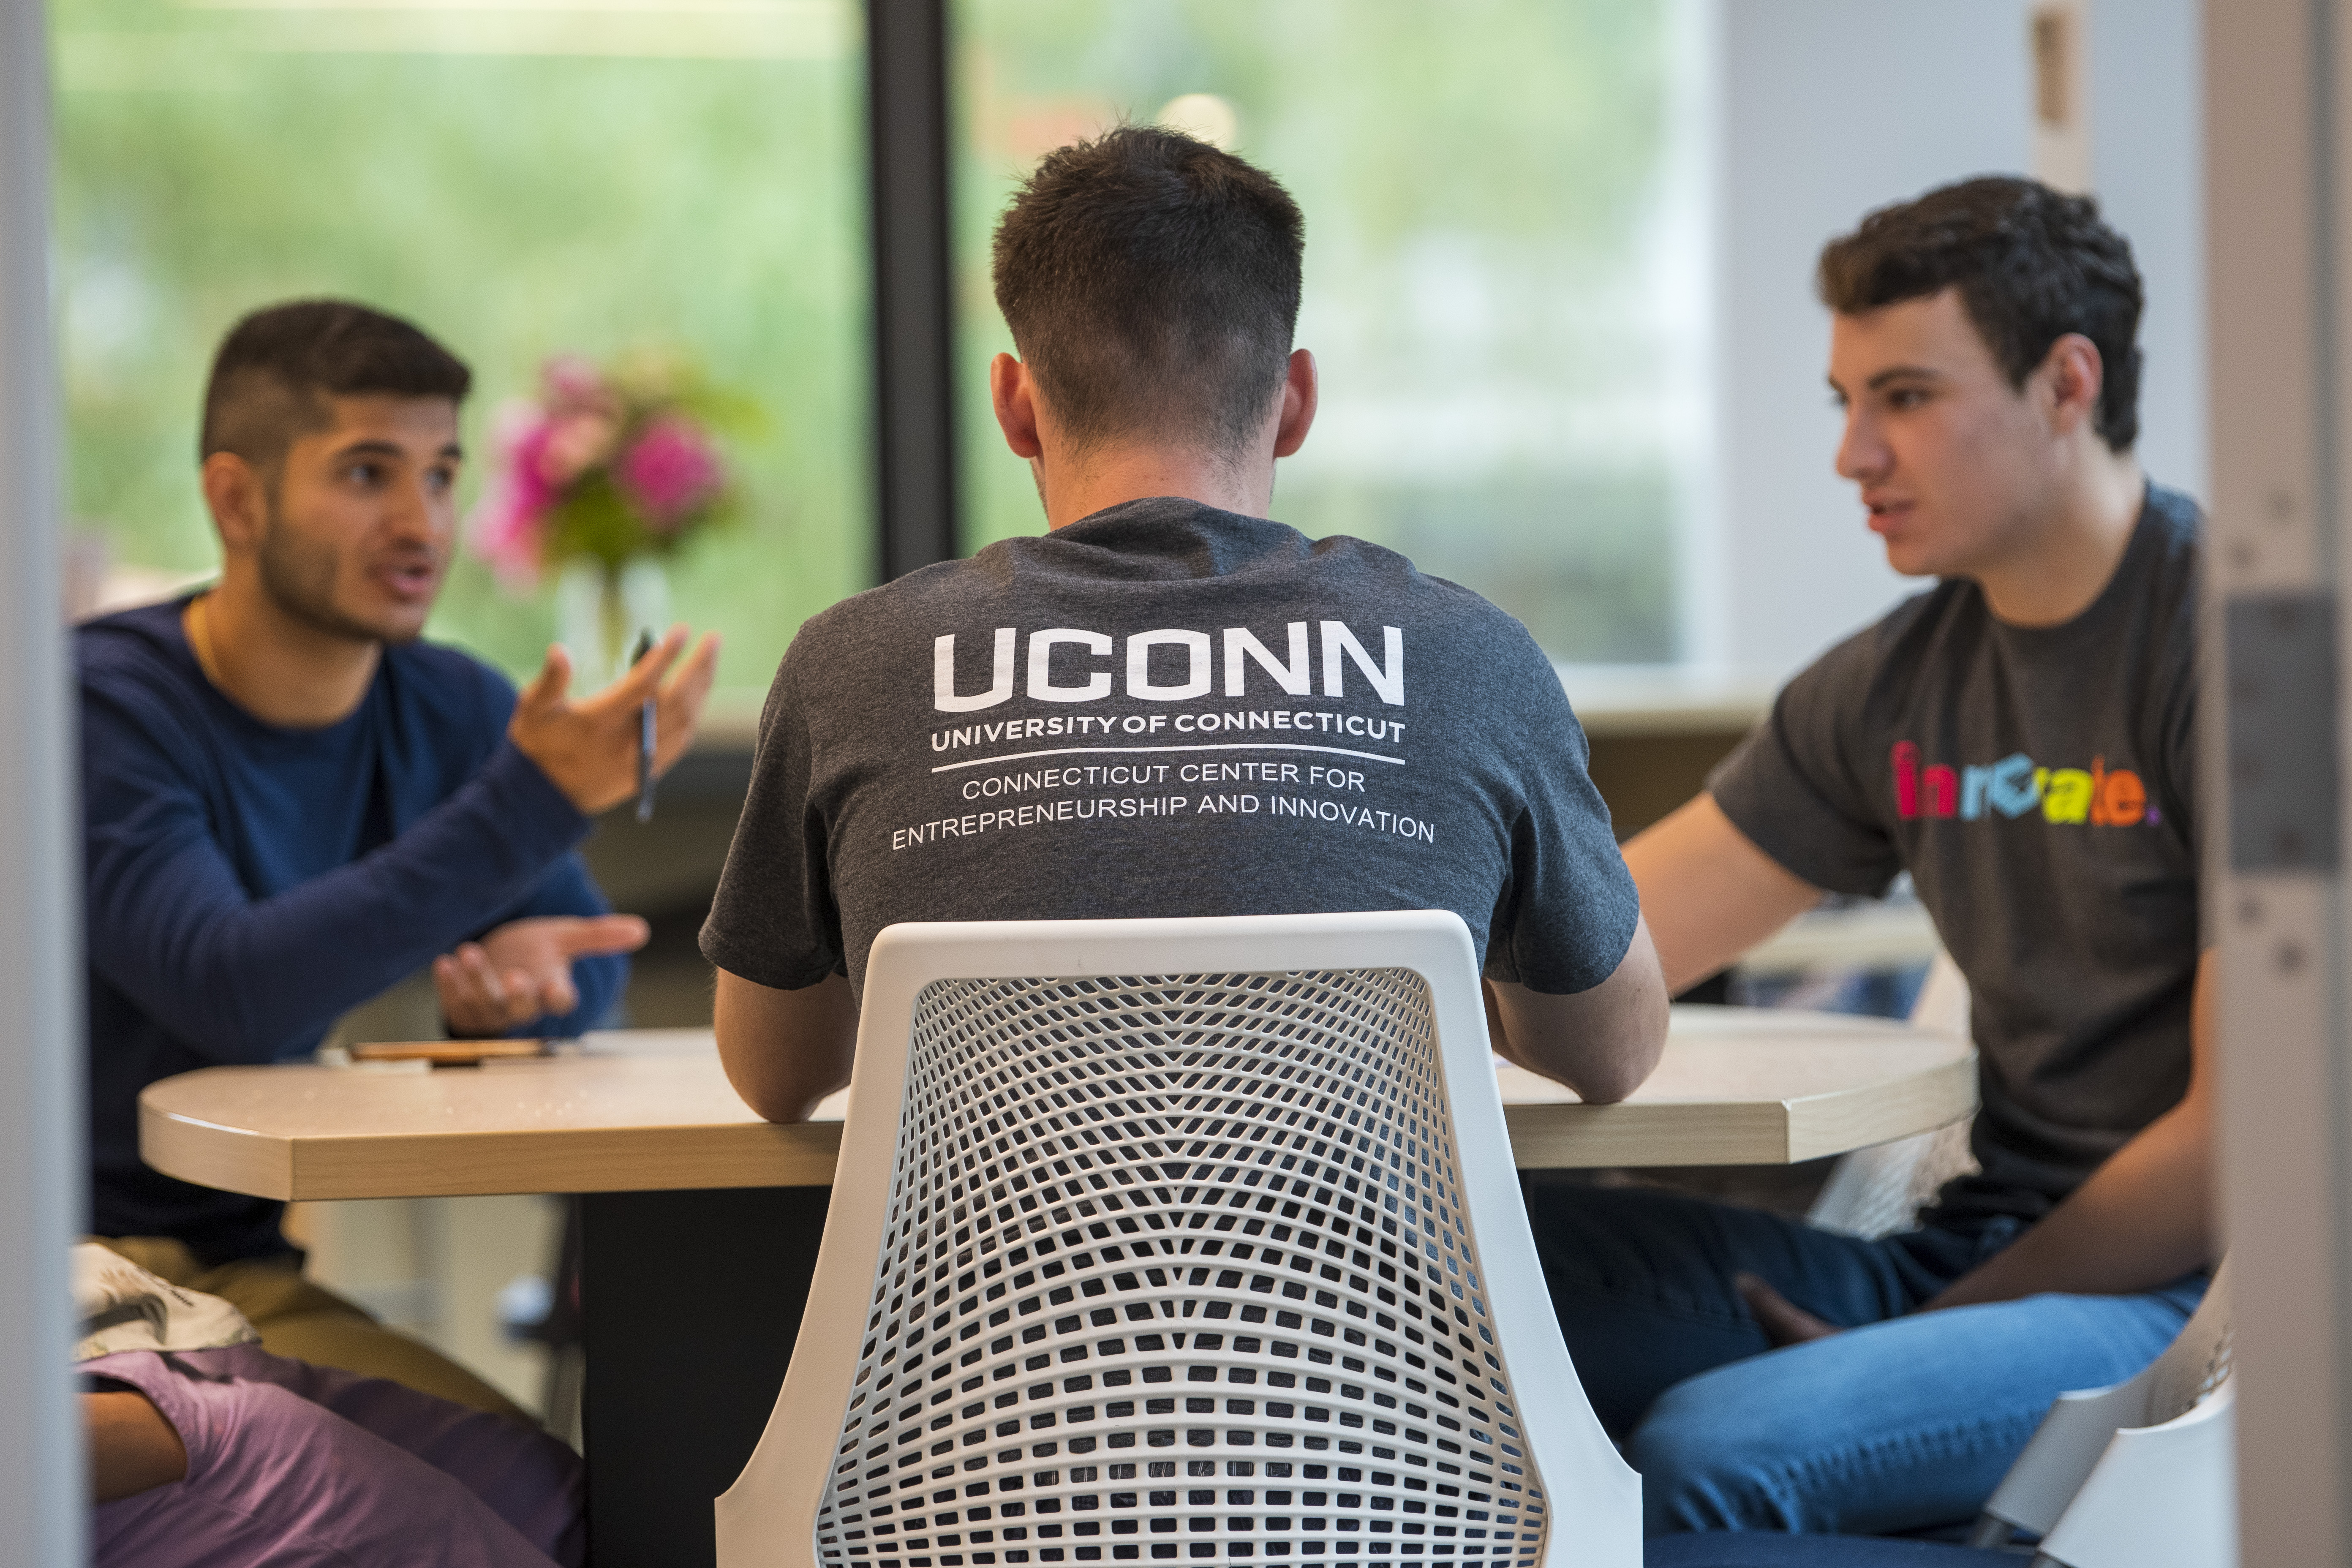 Students at UConn's Connecticut Center for Entrepreneurship